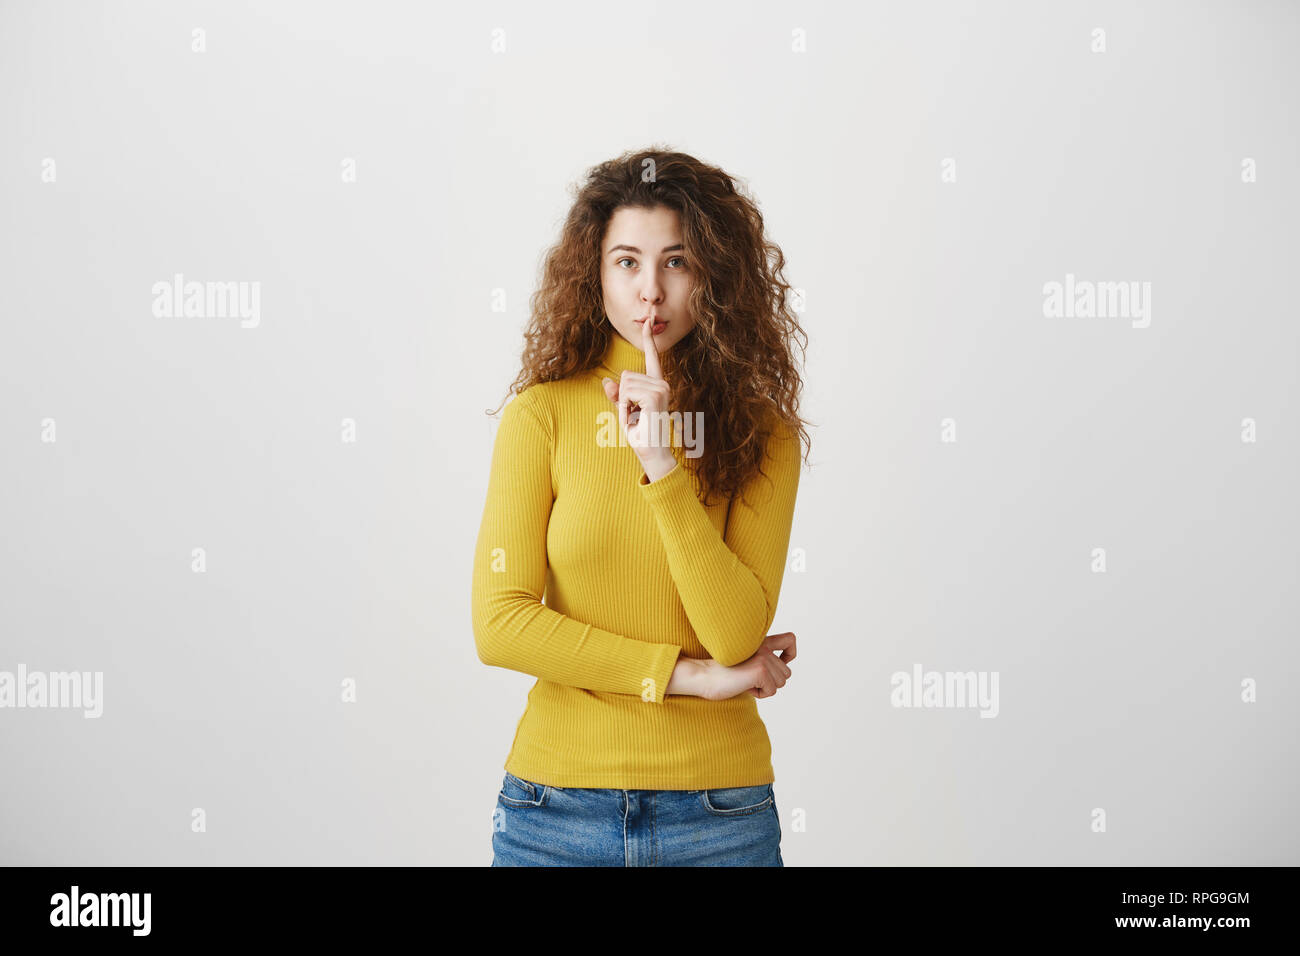 Close up portrait of cute lovely attractive uncertain unsure with entrepreneur making hush gesture isolated on gray background copy-space - Stock Image